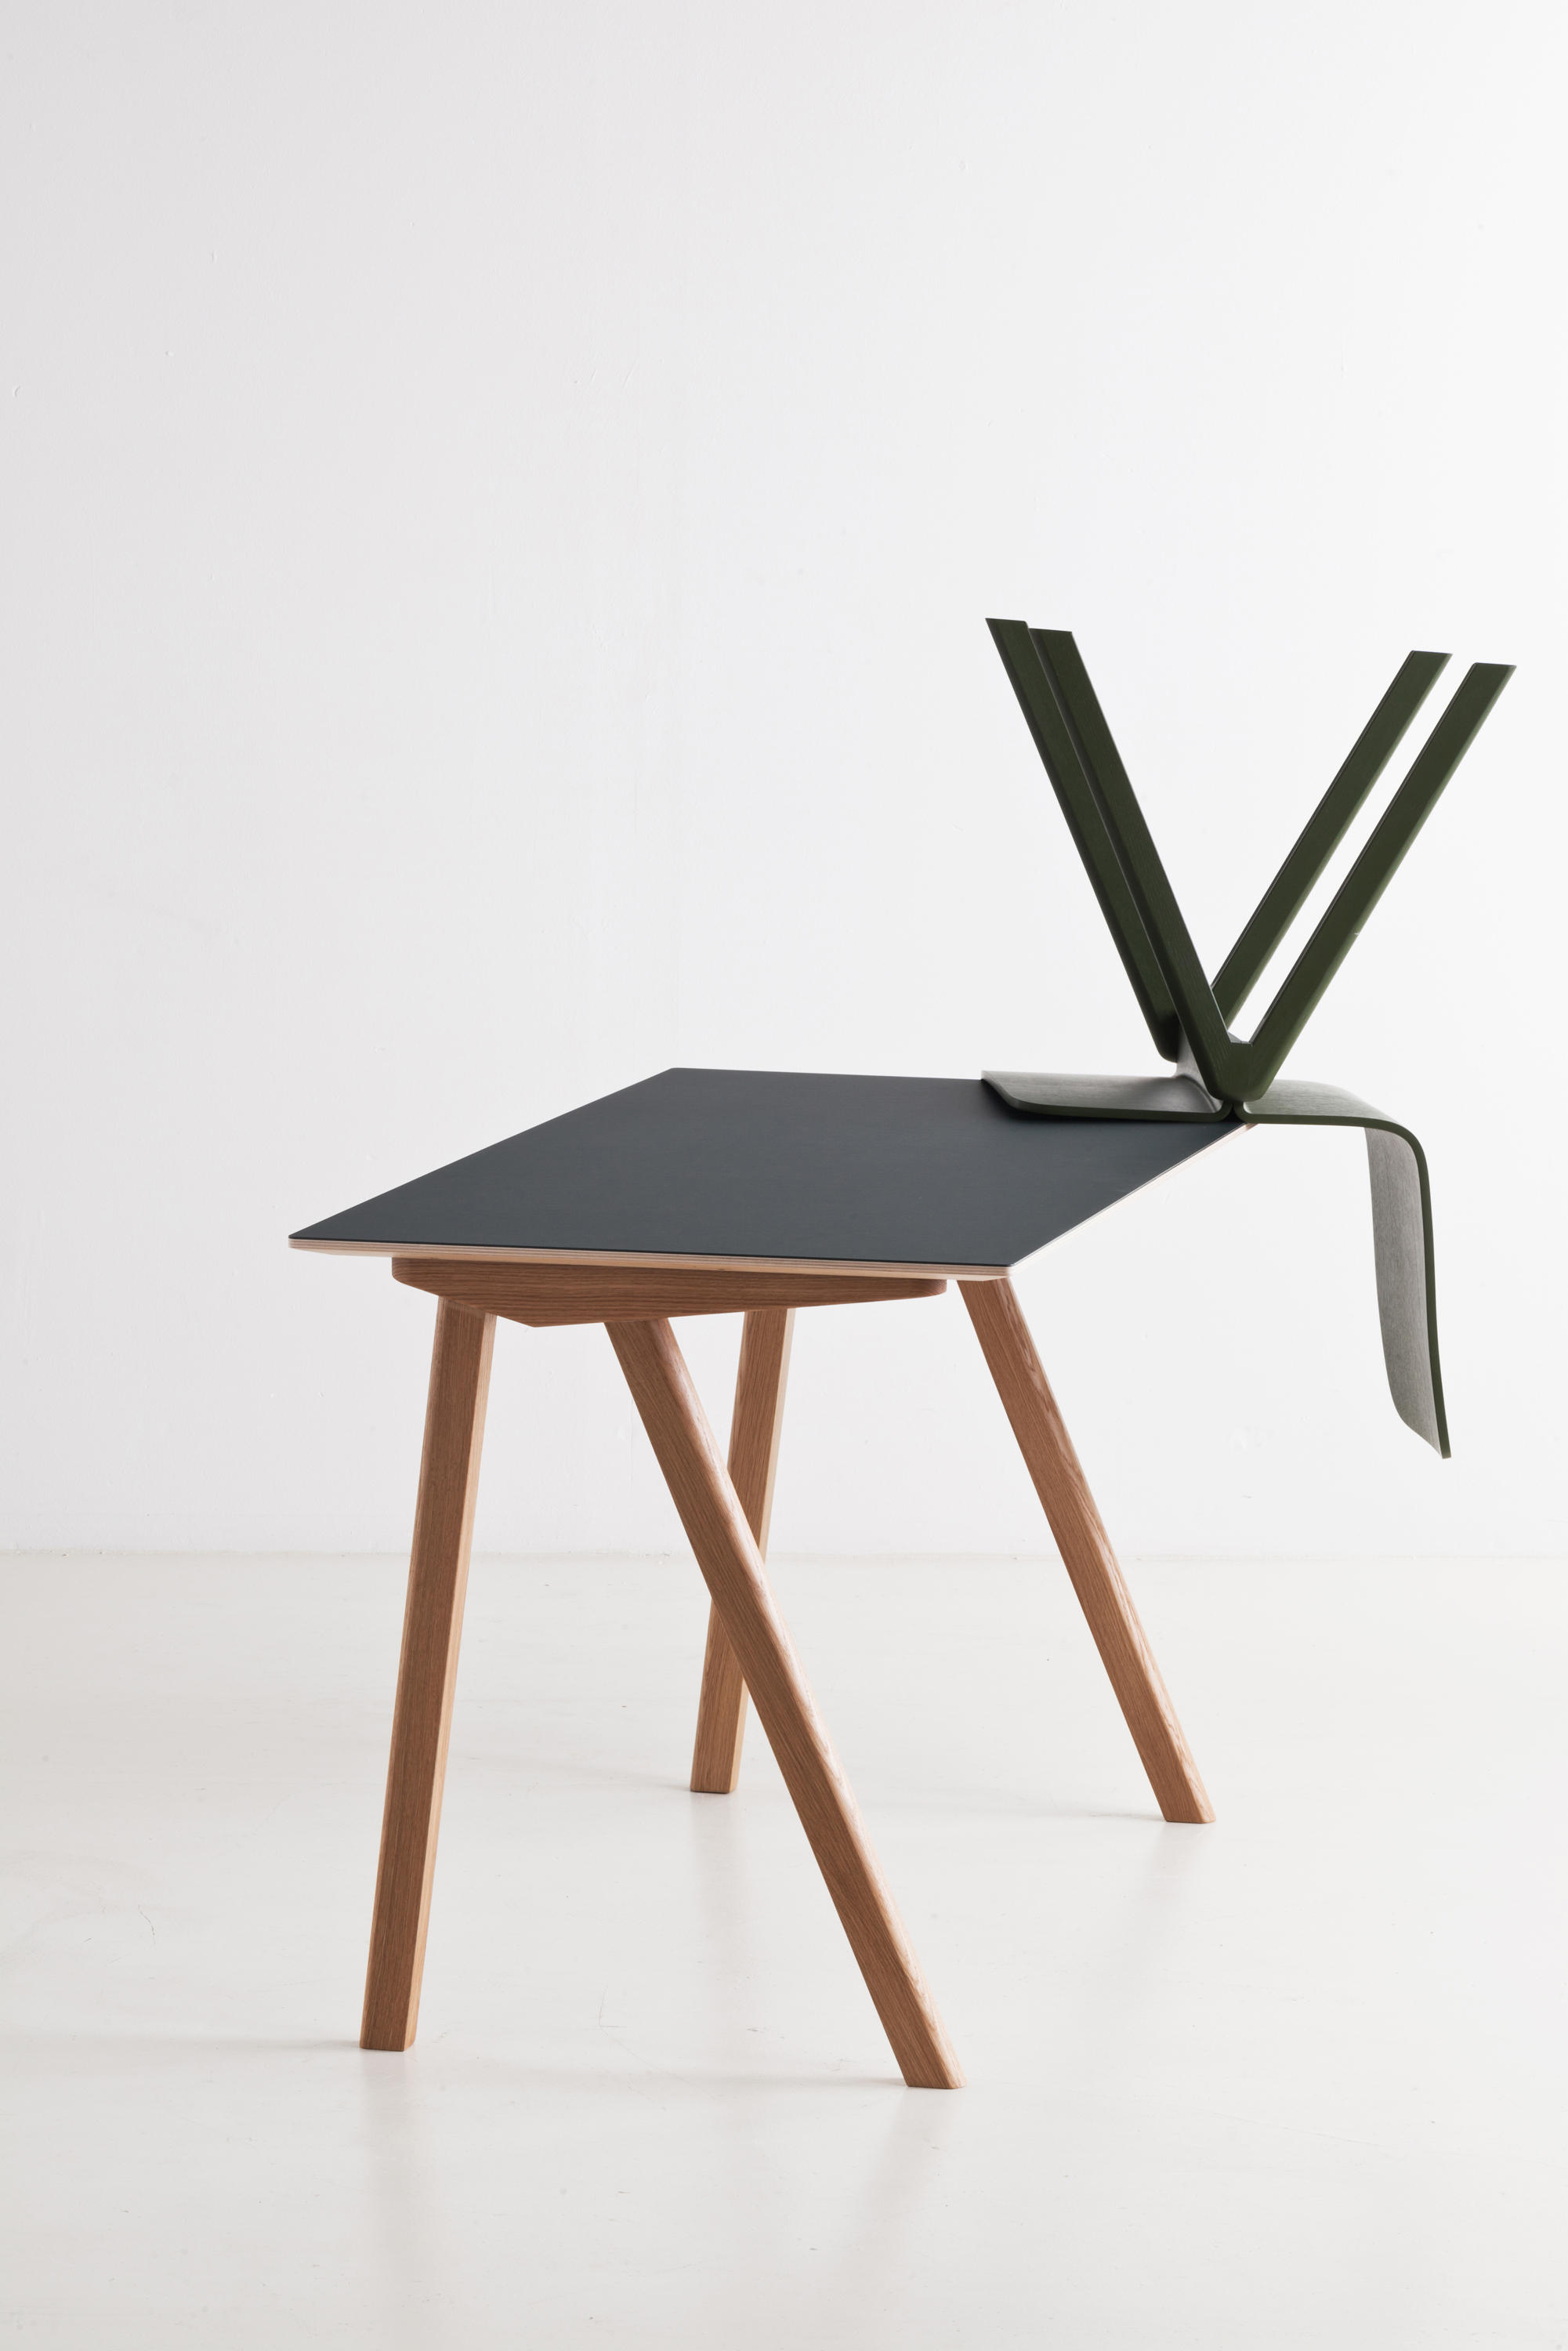 ... Copenhague Bar Stool by Hay ... & COPENHAGUE BAR STOOL - Bar stools from Hay | Architonic